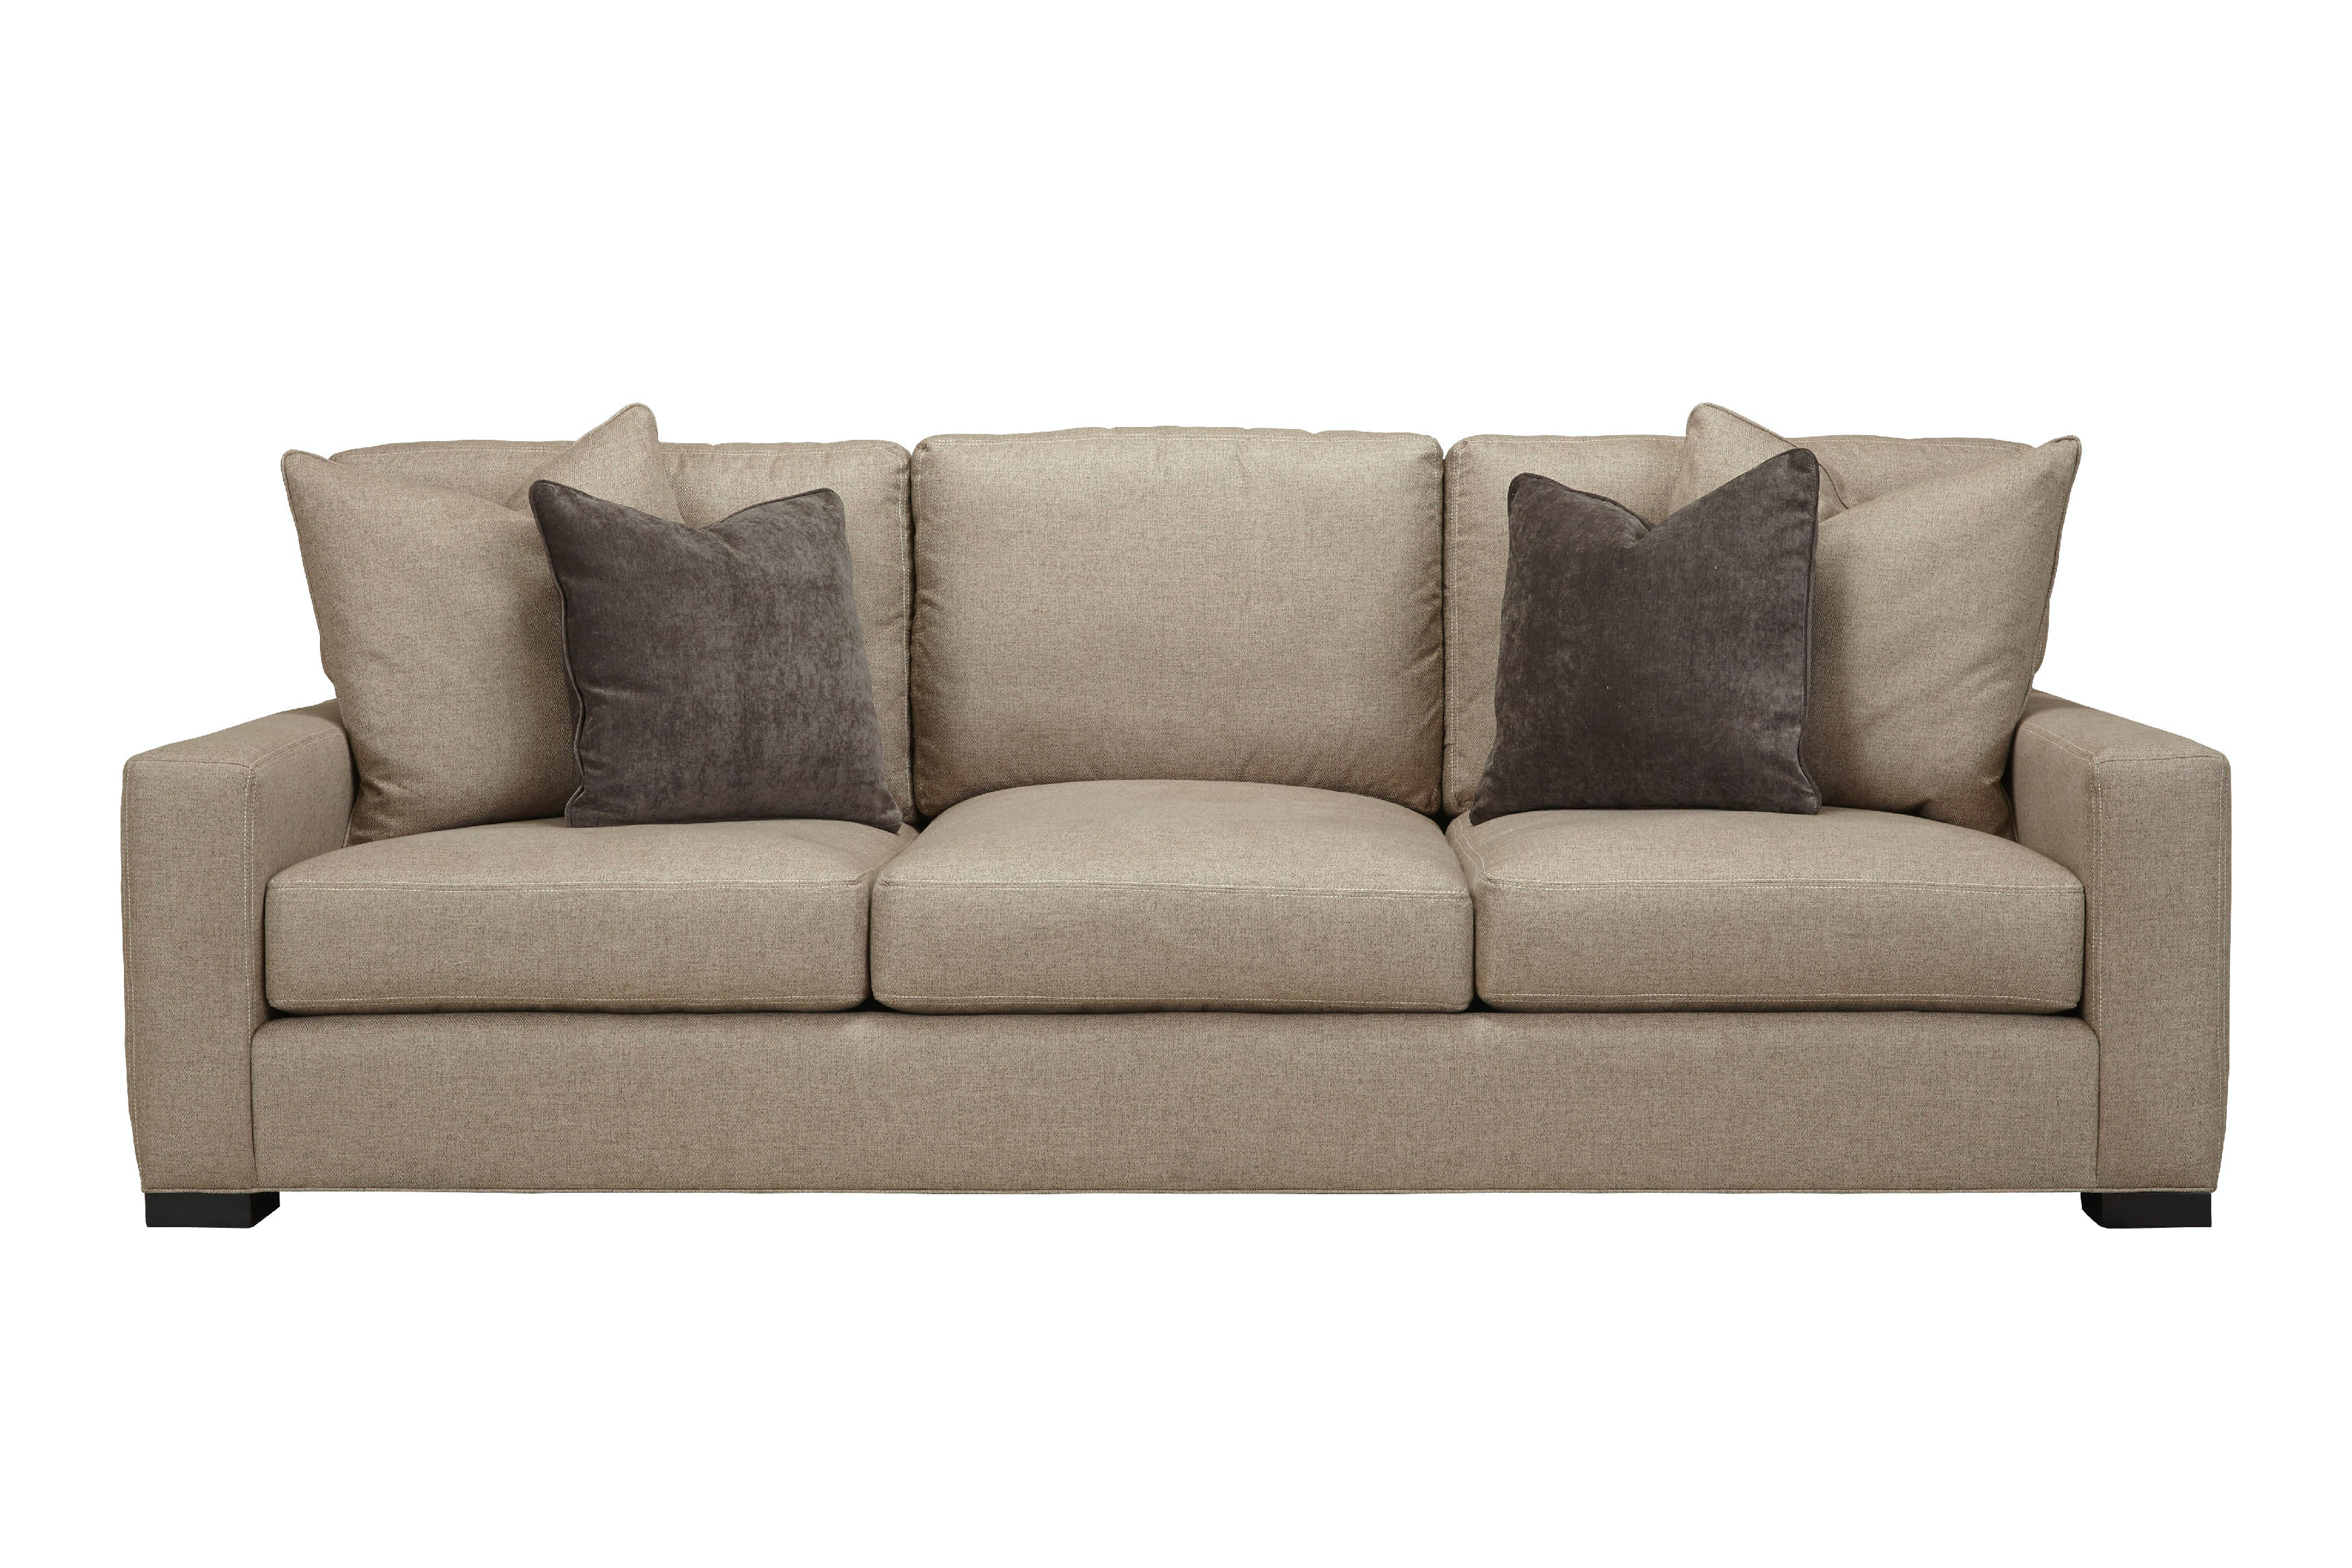 Southern Furniture 8ft 46 8 Ft Couch92